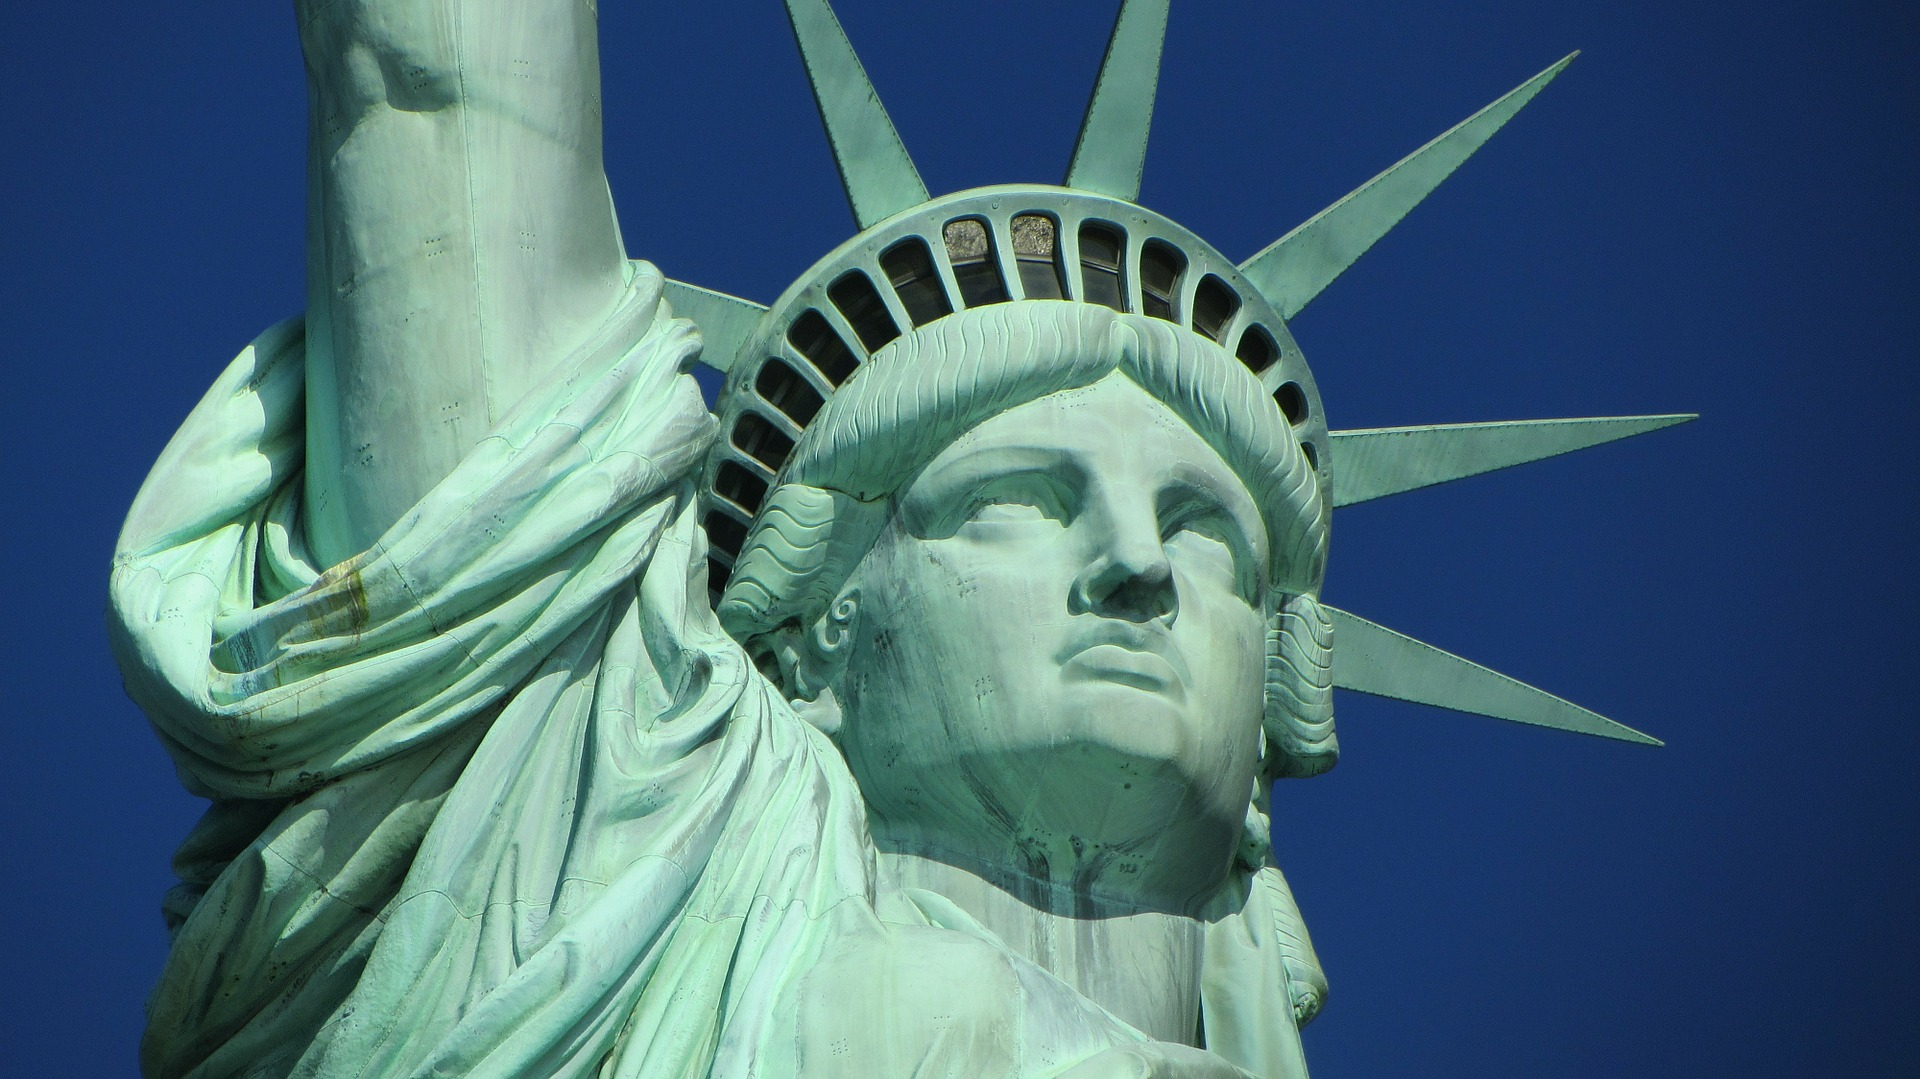 BEST 6 PLACES TO VISIT IN USA IN 2020 - BY BLACK PLATINUM GOLD - HOLLYWOOD